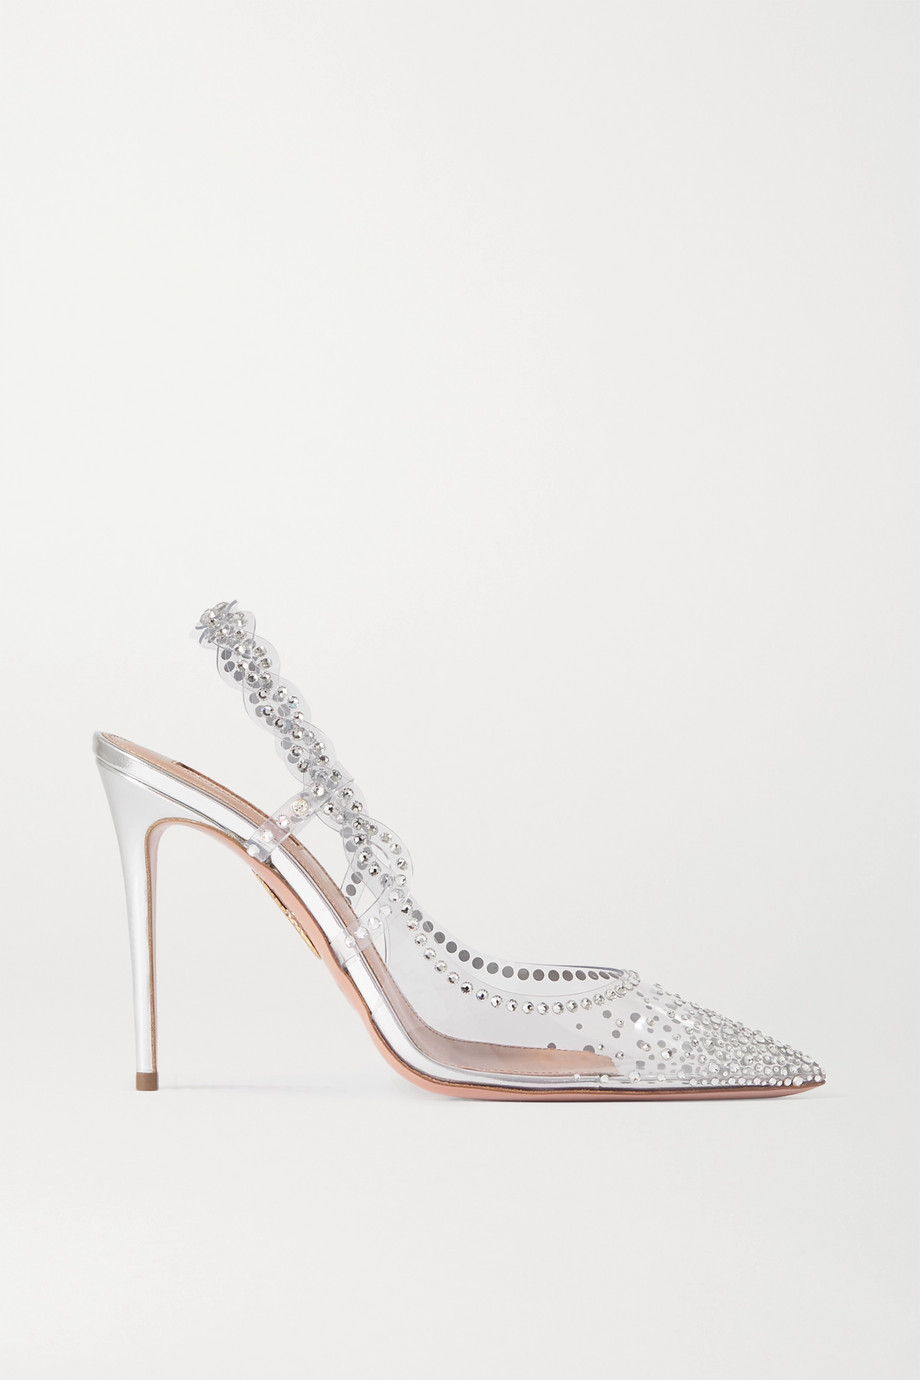 Aquazzura Heaven crystal-embellished PVC slingback pumps